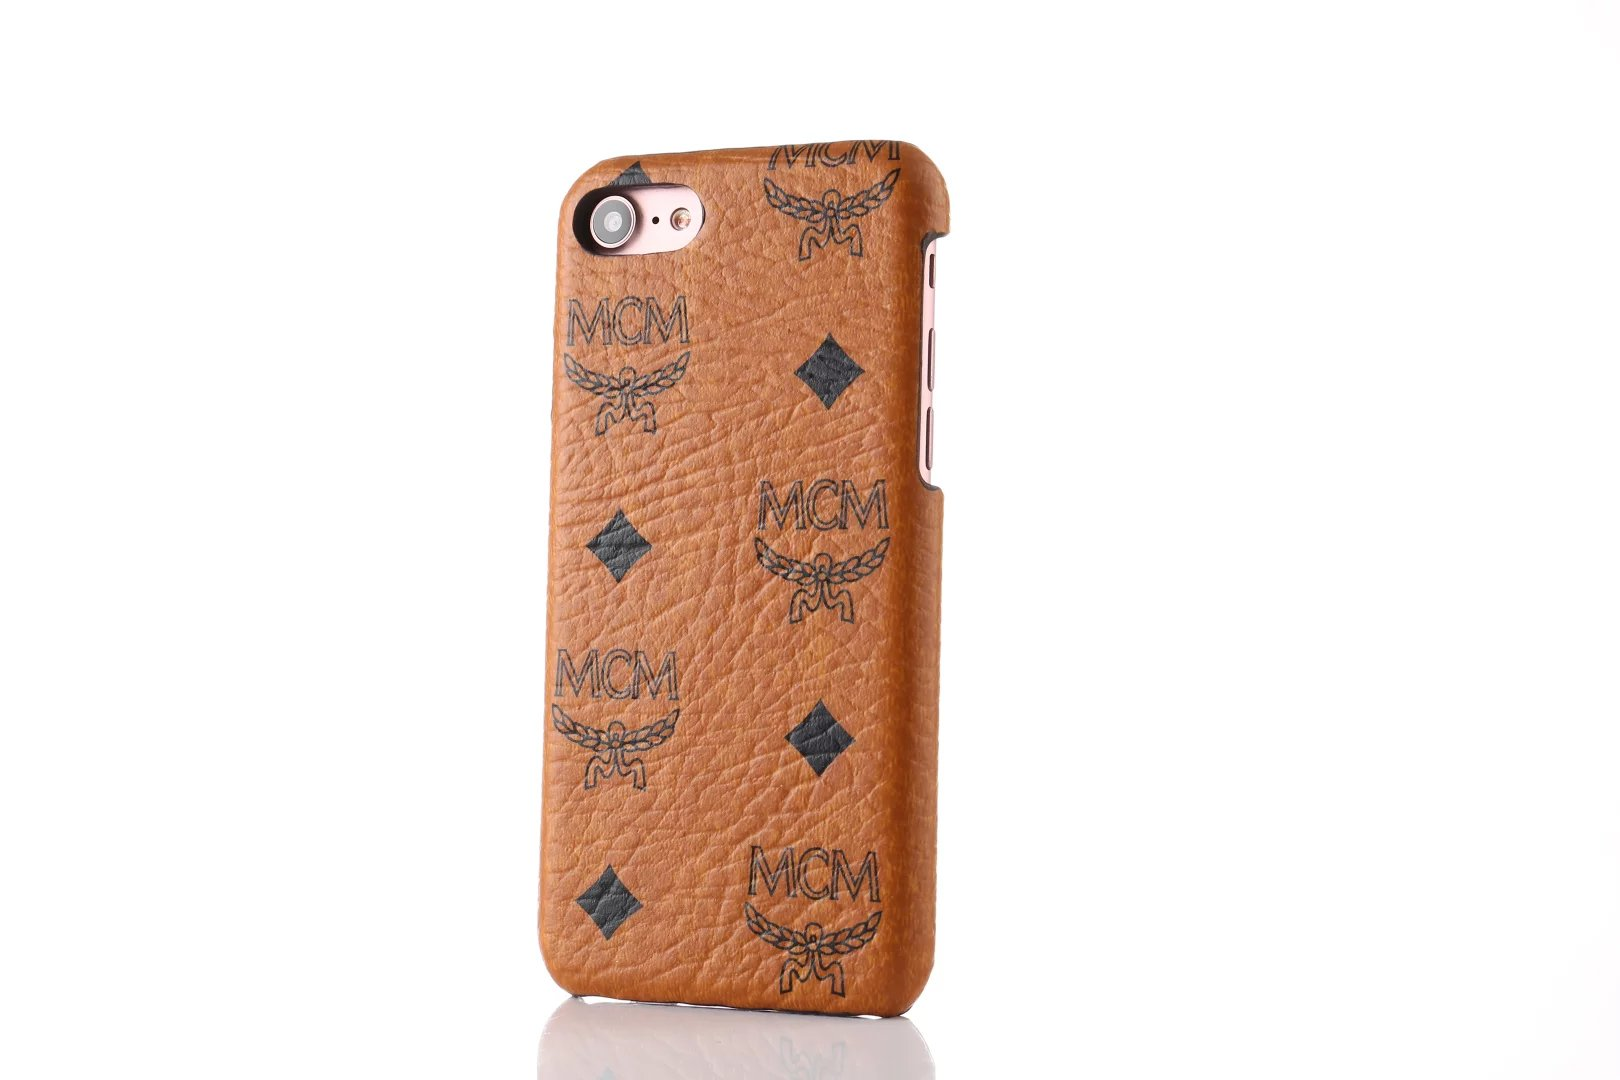 cover of iphone 7 what is the best iphone 7 case fashion iphone7 case custom case iphone 7 latest iphone 7 cases new apple iphone 7 price top iphone cases best iphone 7 phone cases upcoming iphone release